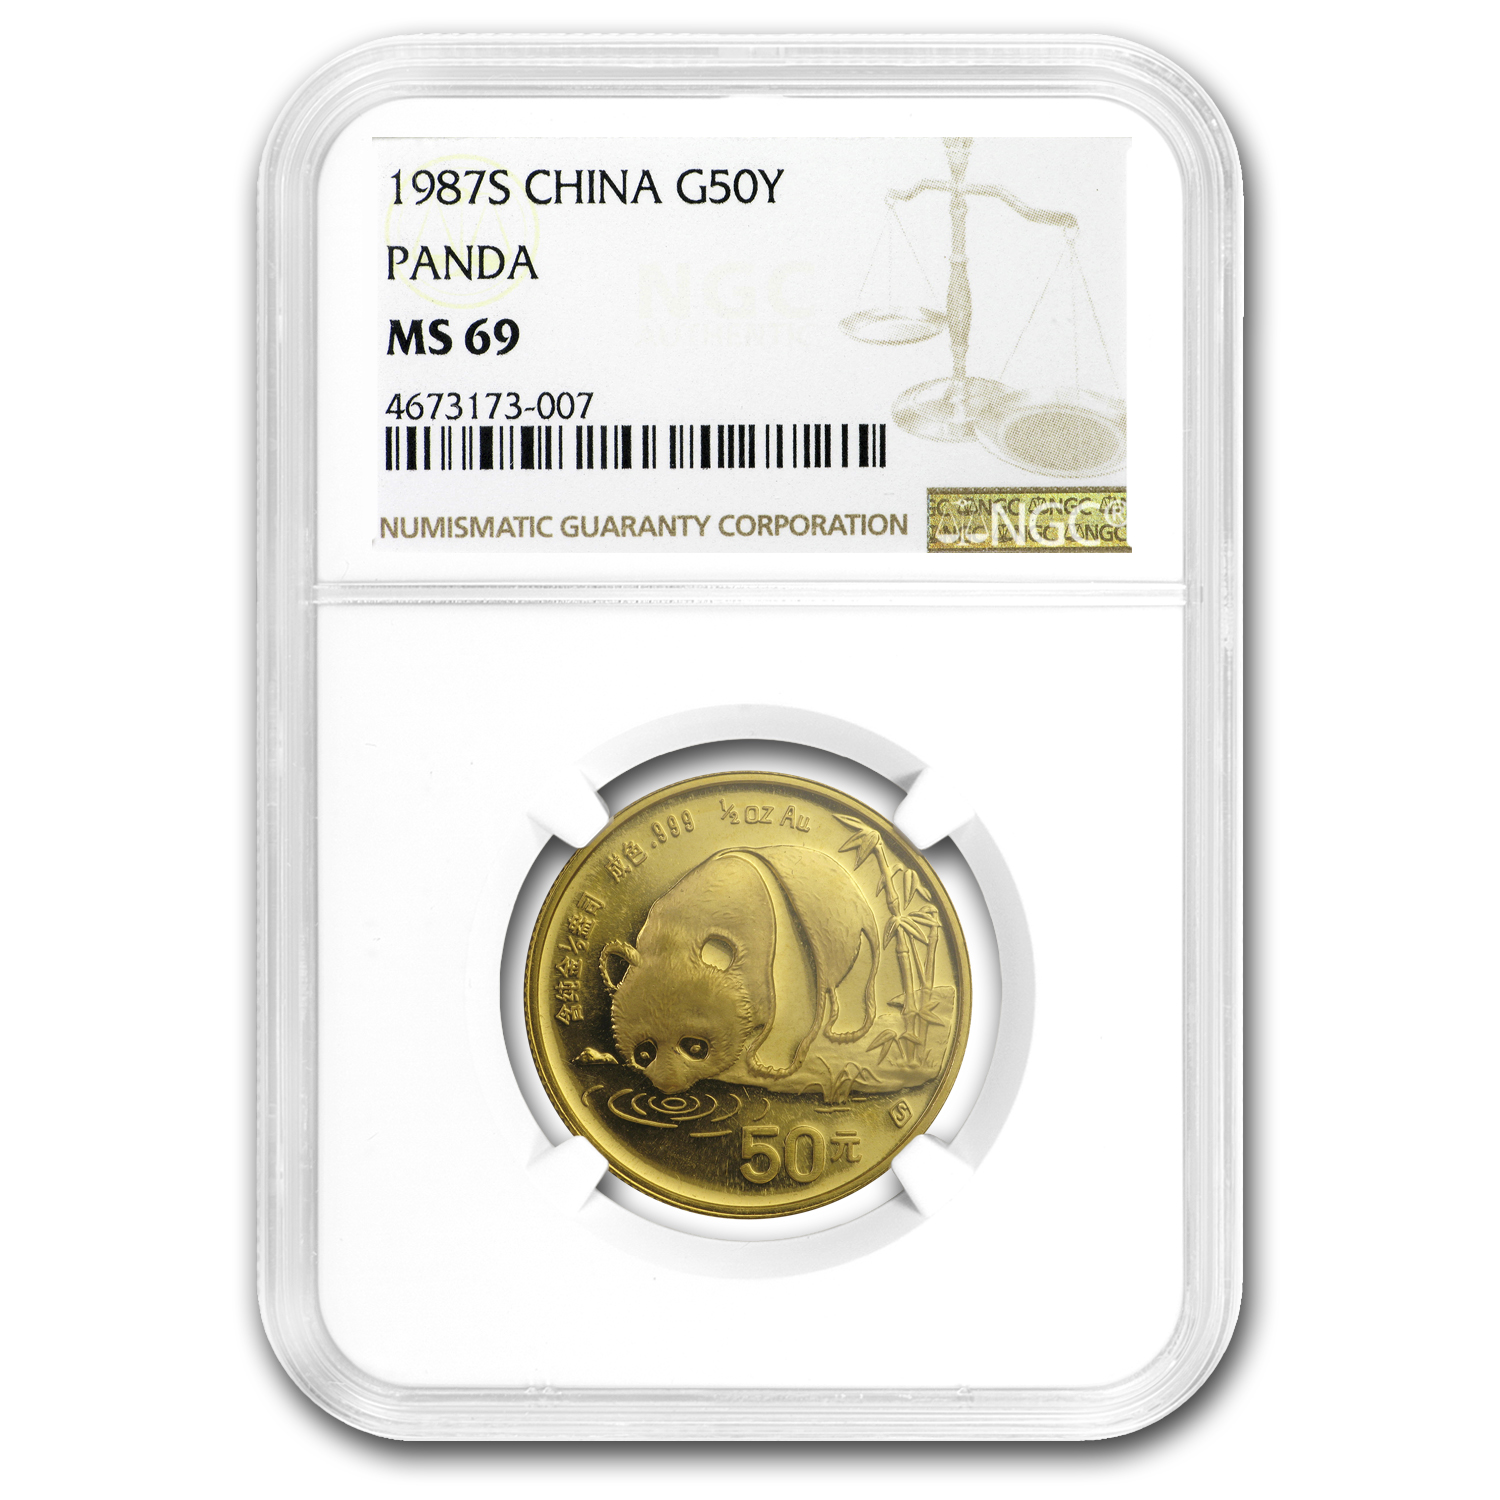 1987-S (1/2 oz) Gold Chinese Pandas - MS-69 NGC